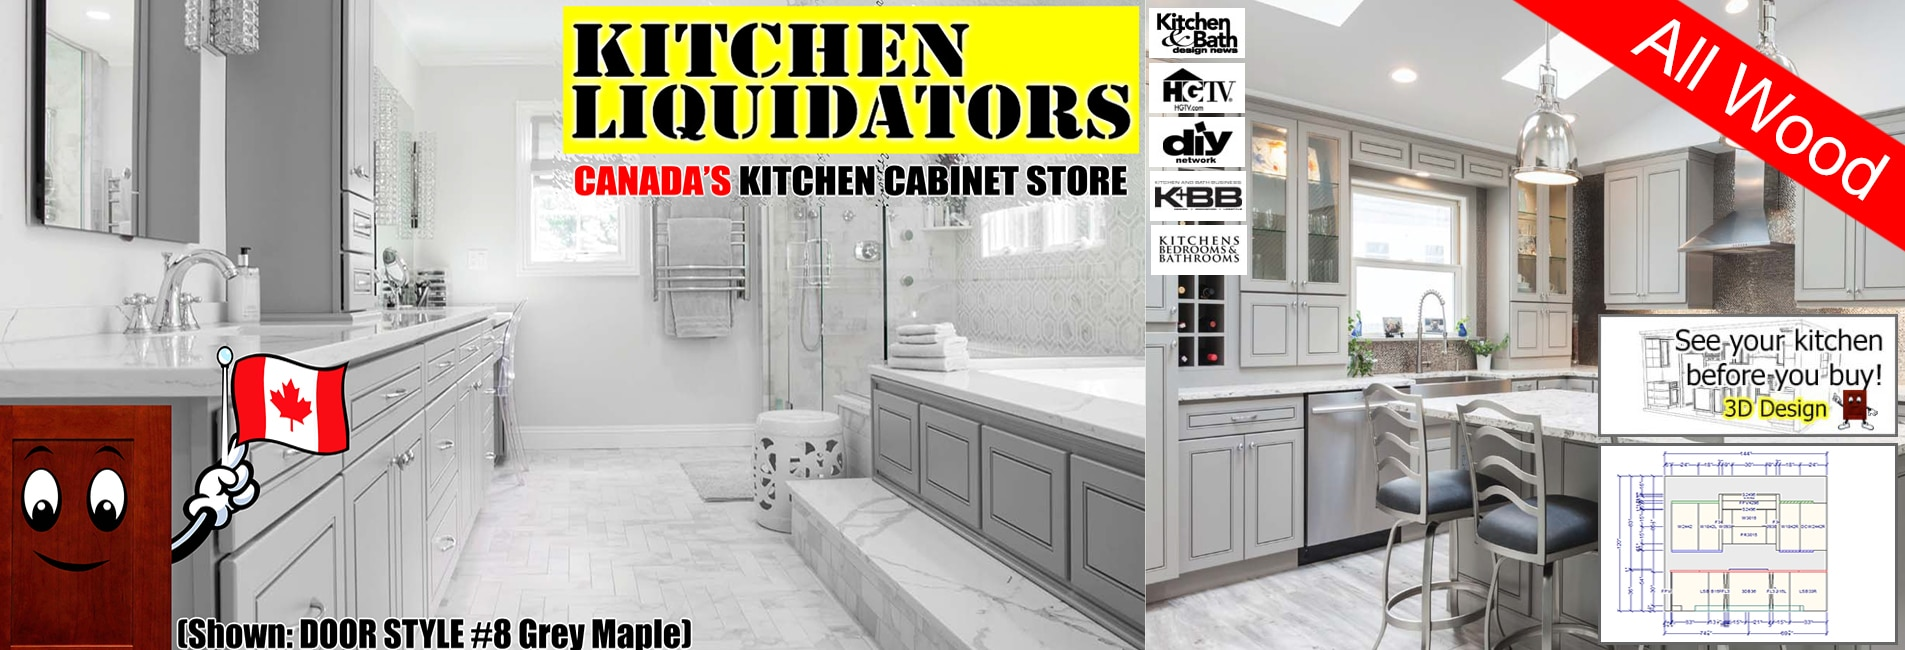 Canada Kitchen Liquidators – Kitchen Cabinets - Sinks